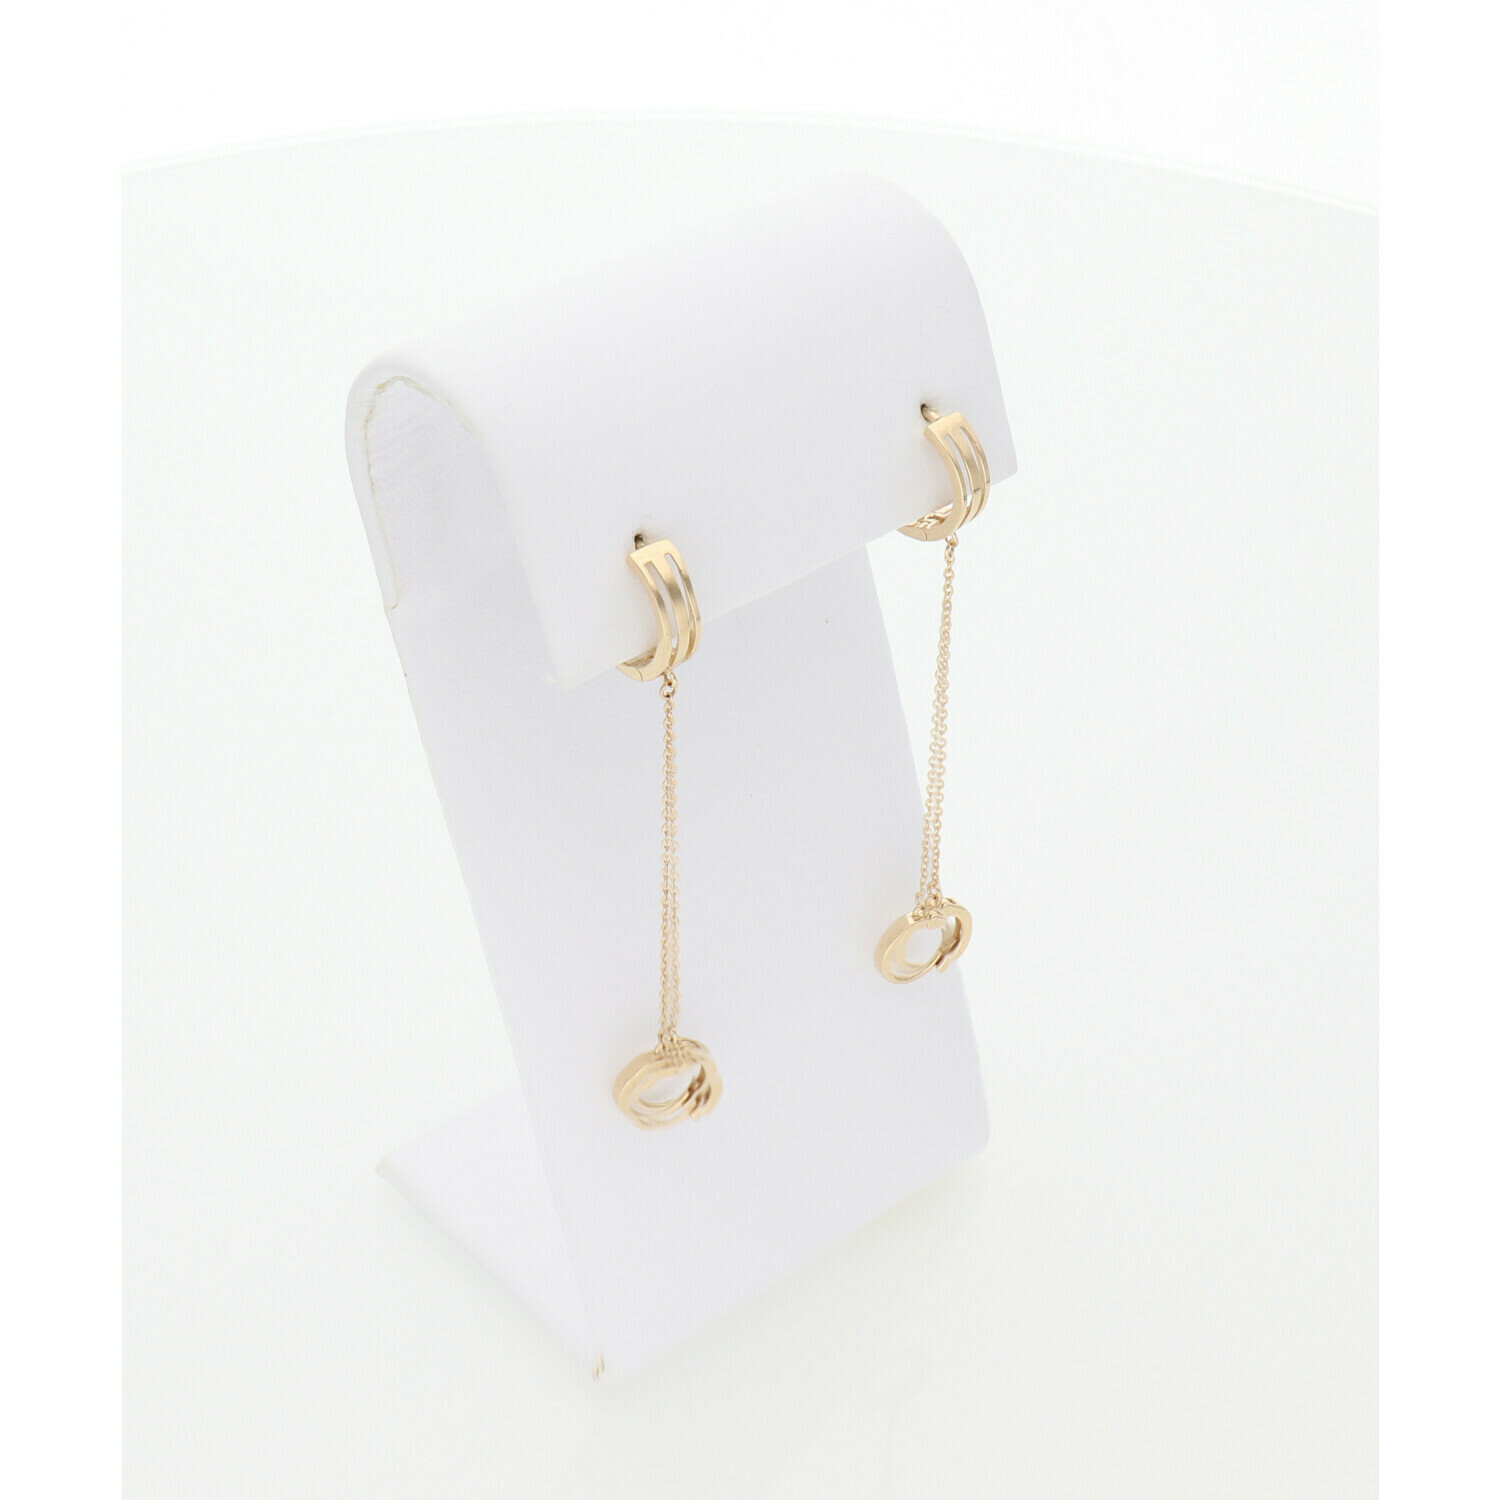 14 Karat Gold Double Hoops Chained Earrings